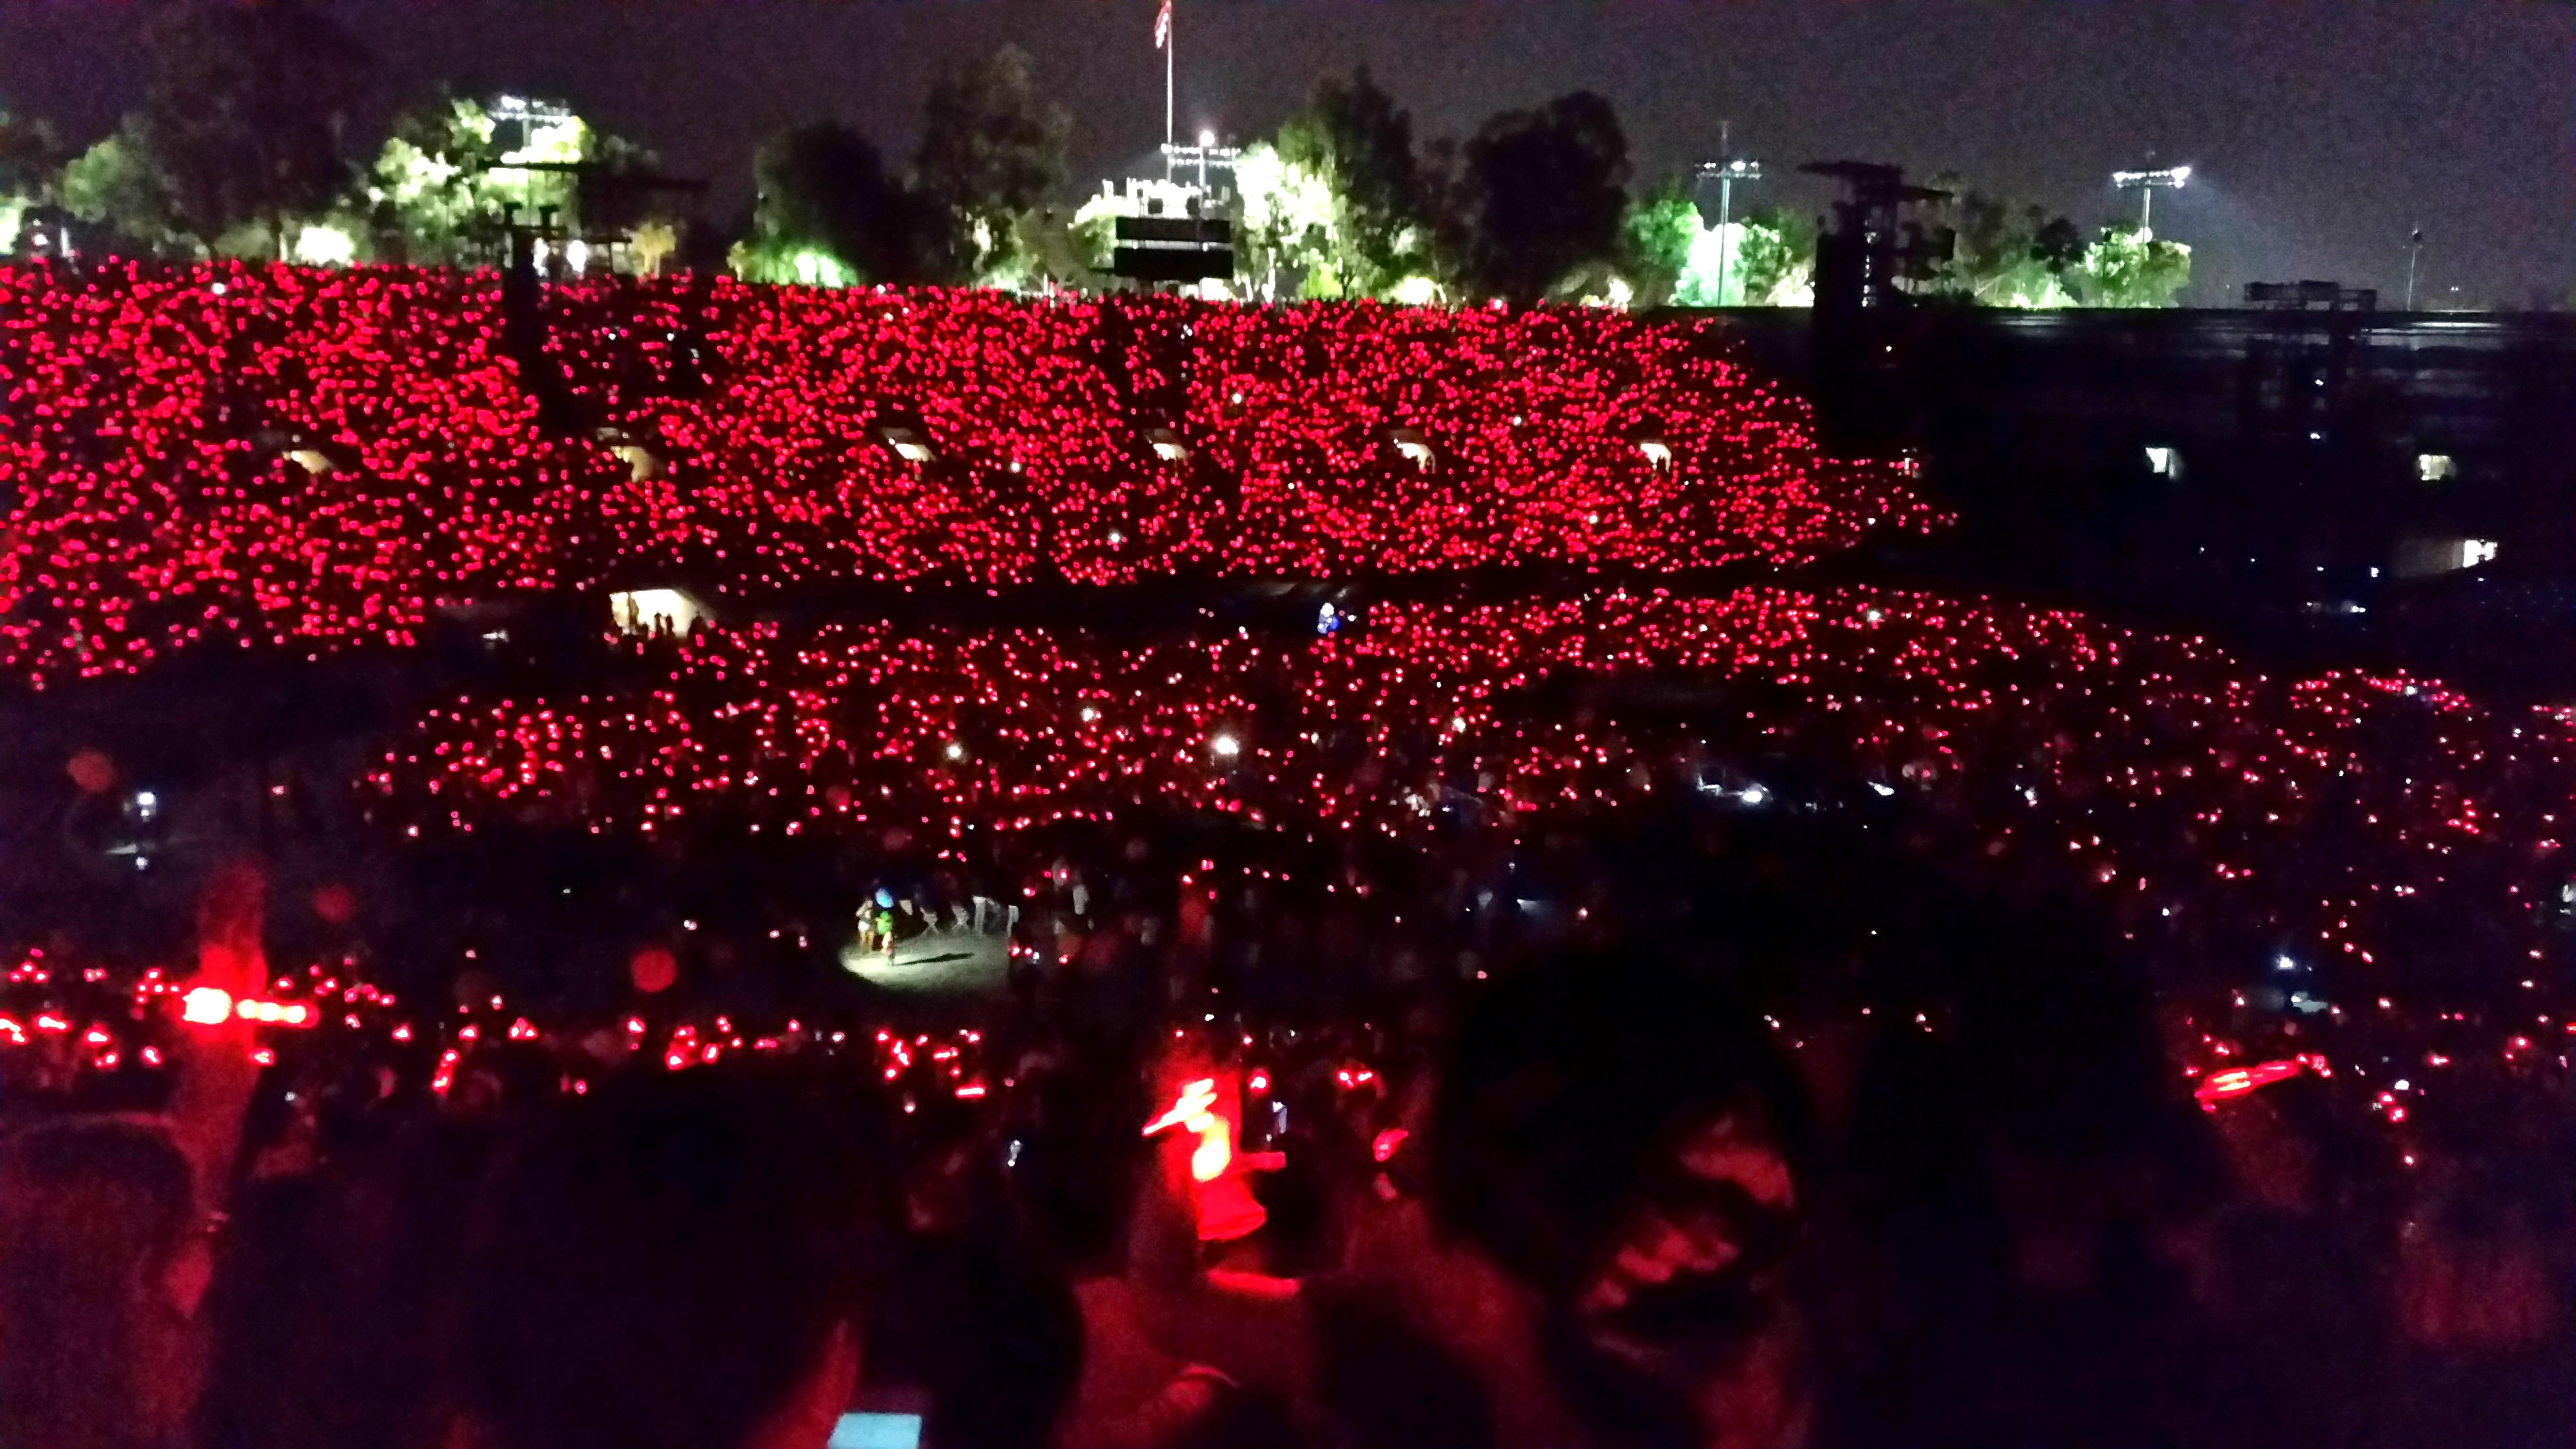 Rose Bowl Section 16-L Row 57 Seat 3